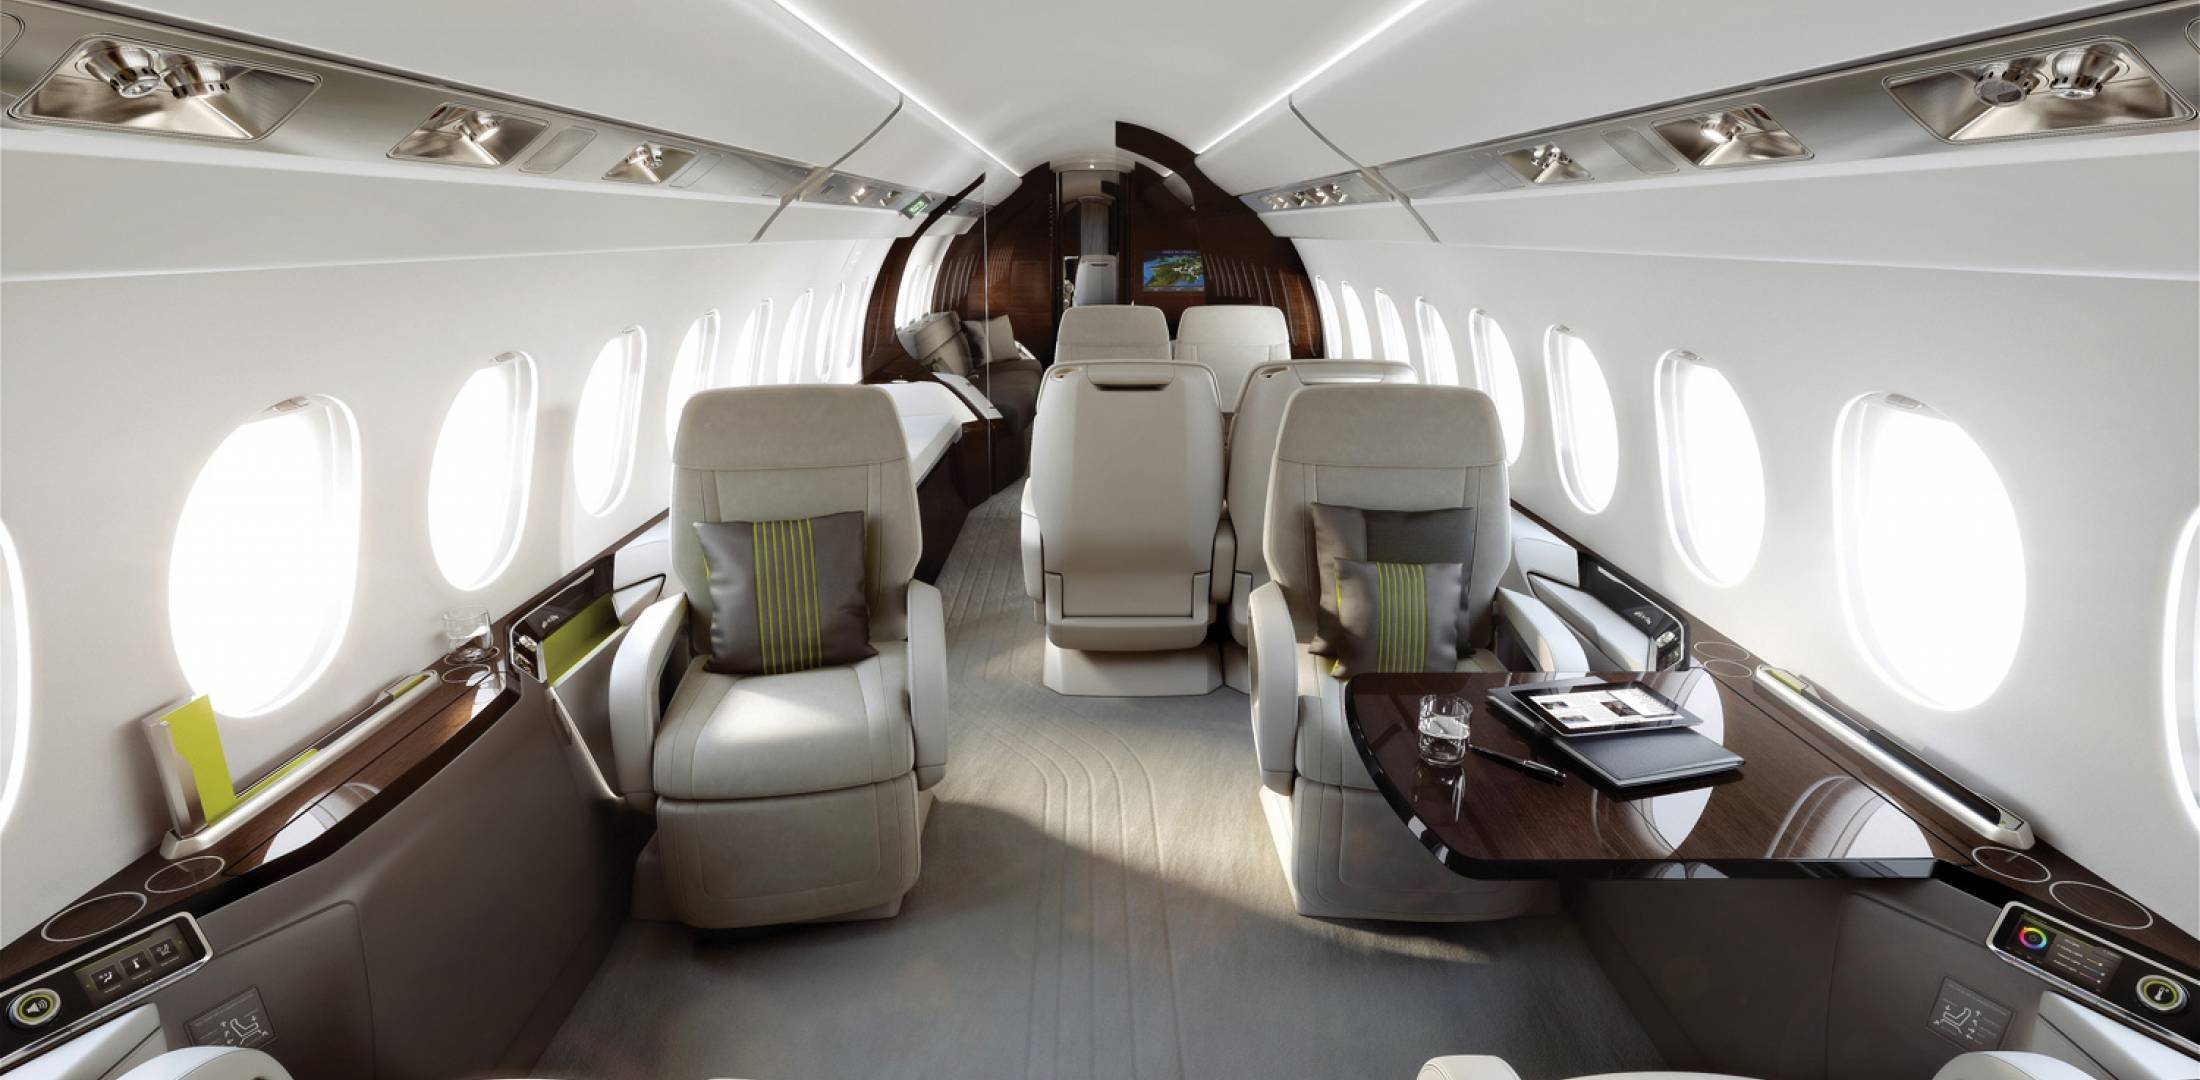 Most spacious cabin in its class business aviation news for Cabins 1770